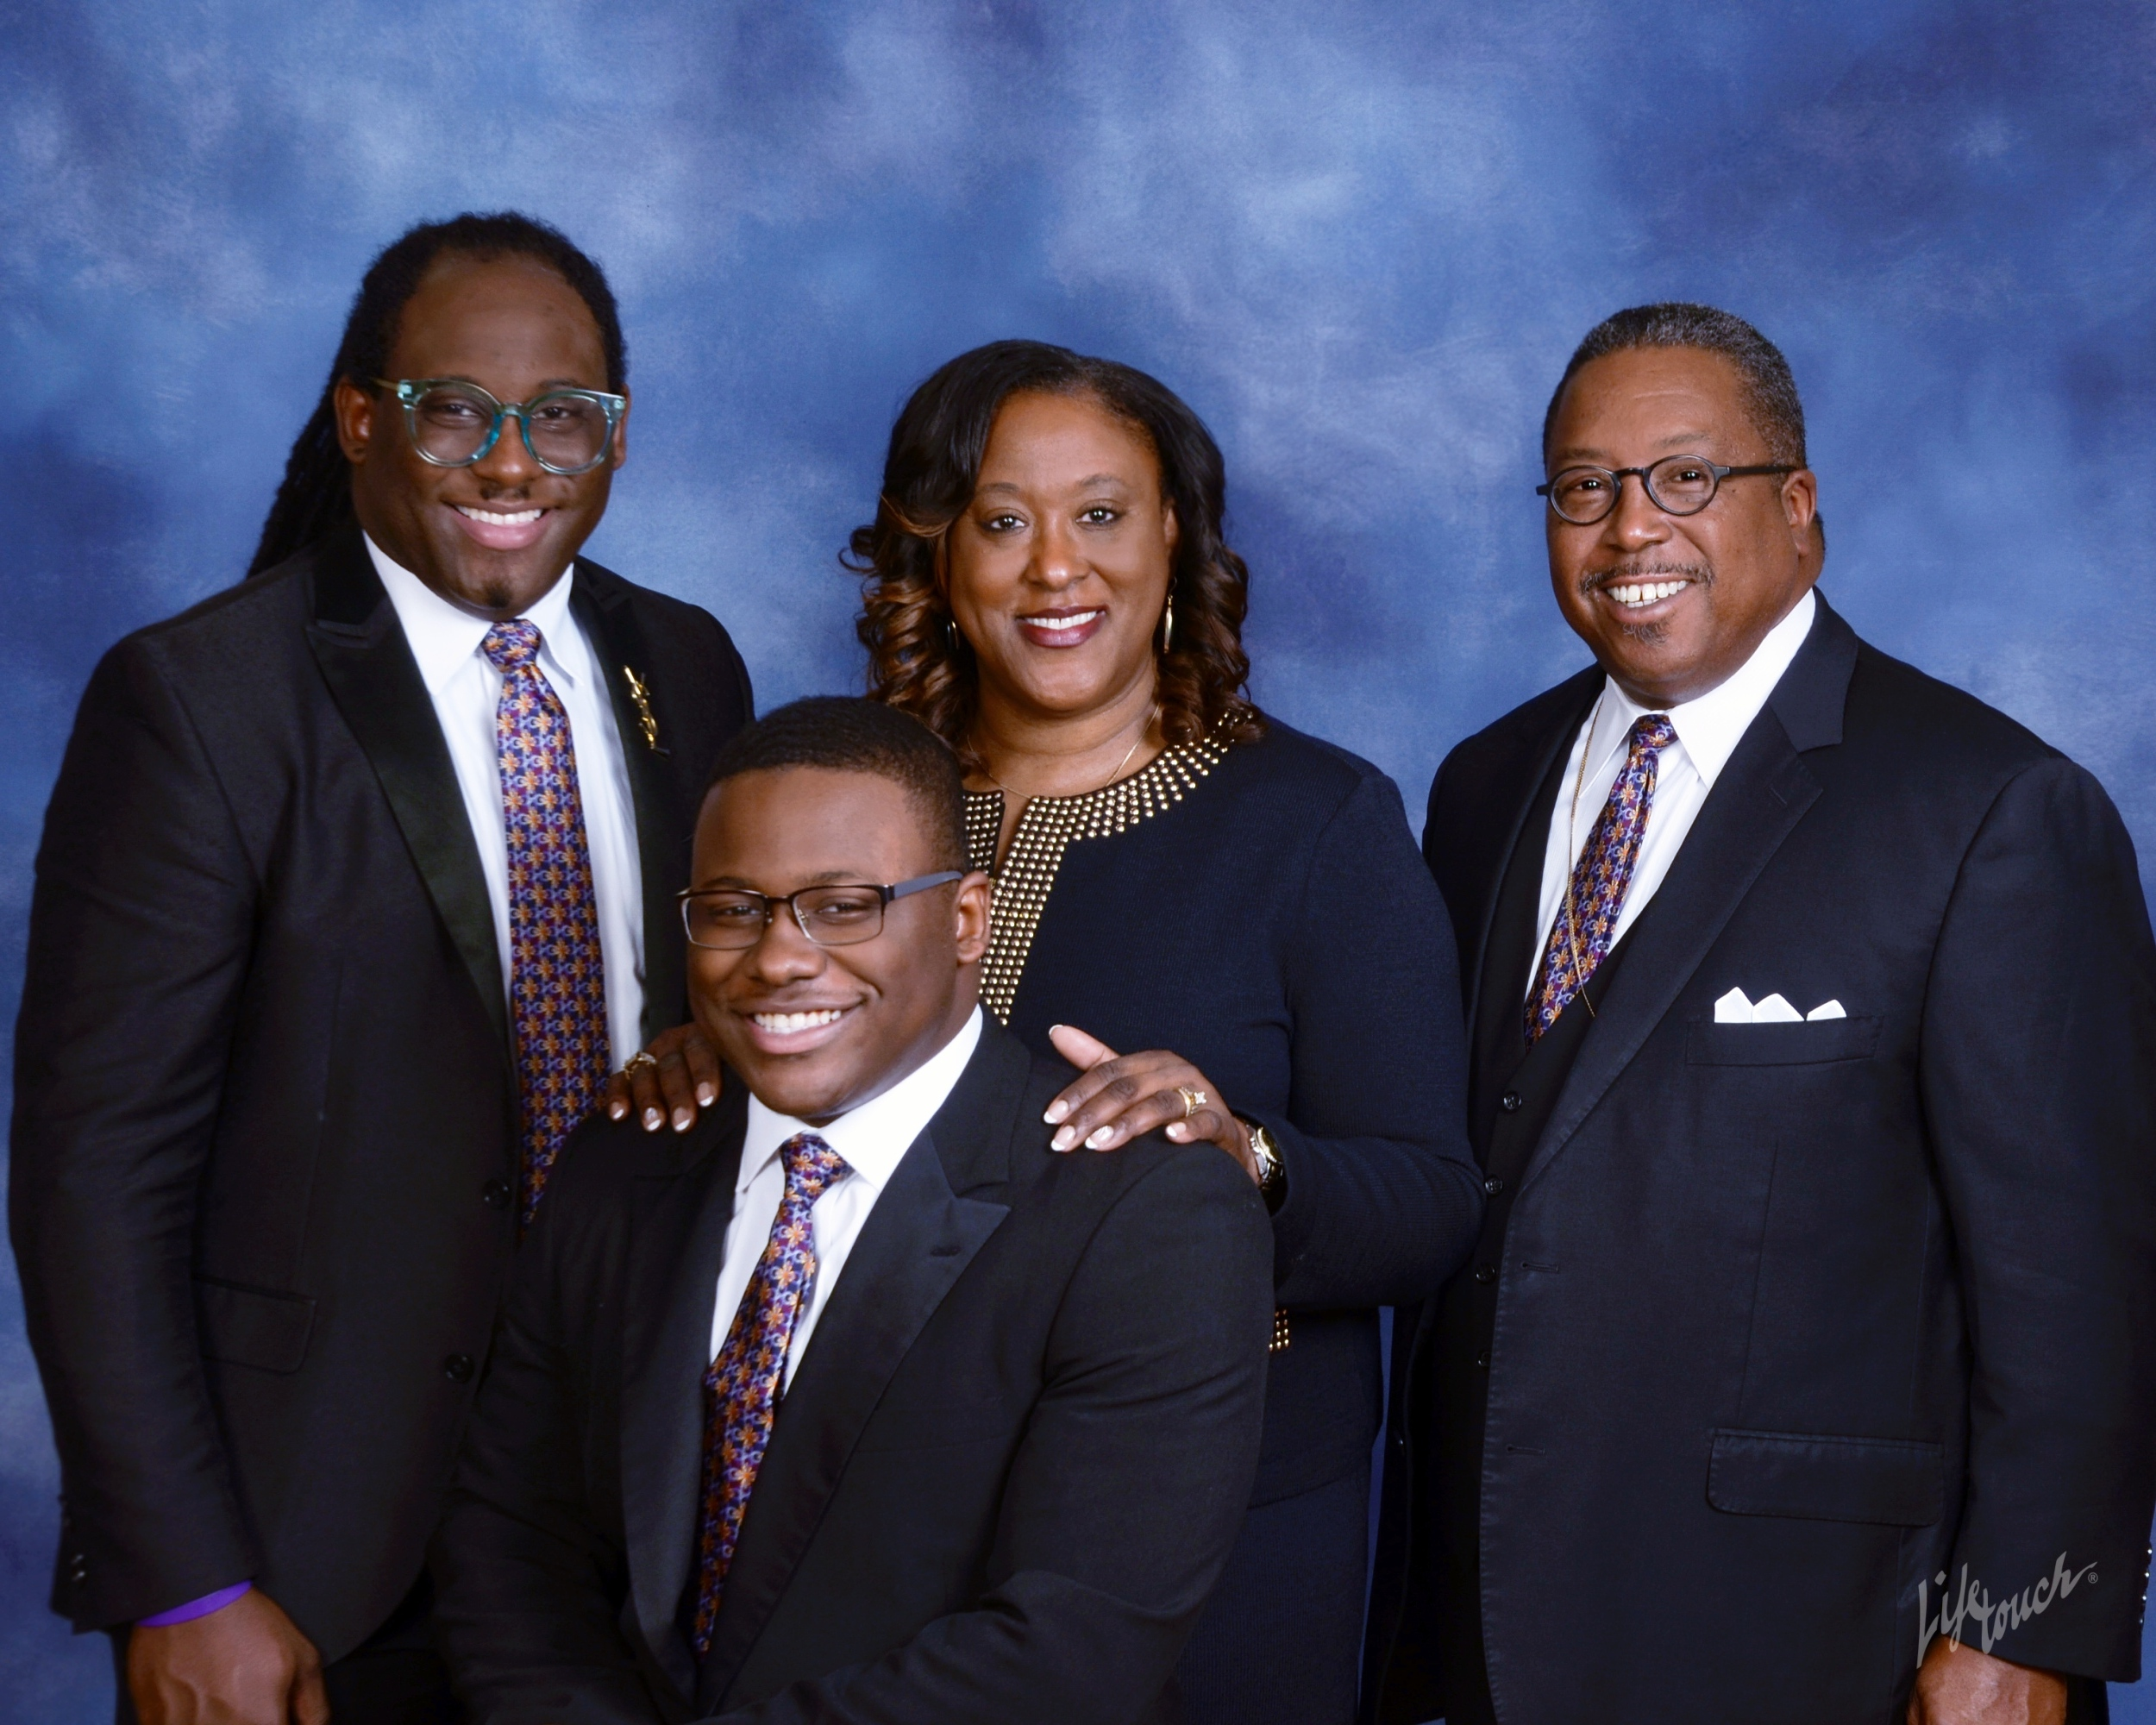 Booker Family - He is married to Lady Gail G. Booker and has two sons Daeryl